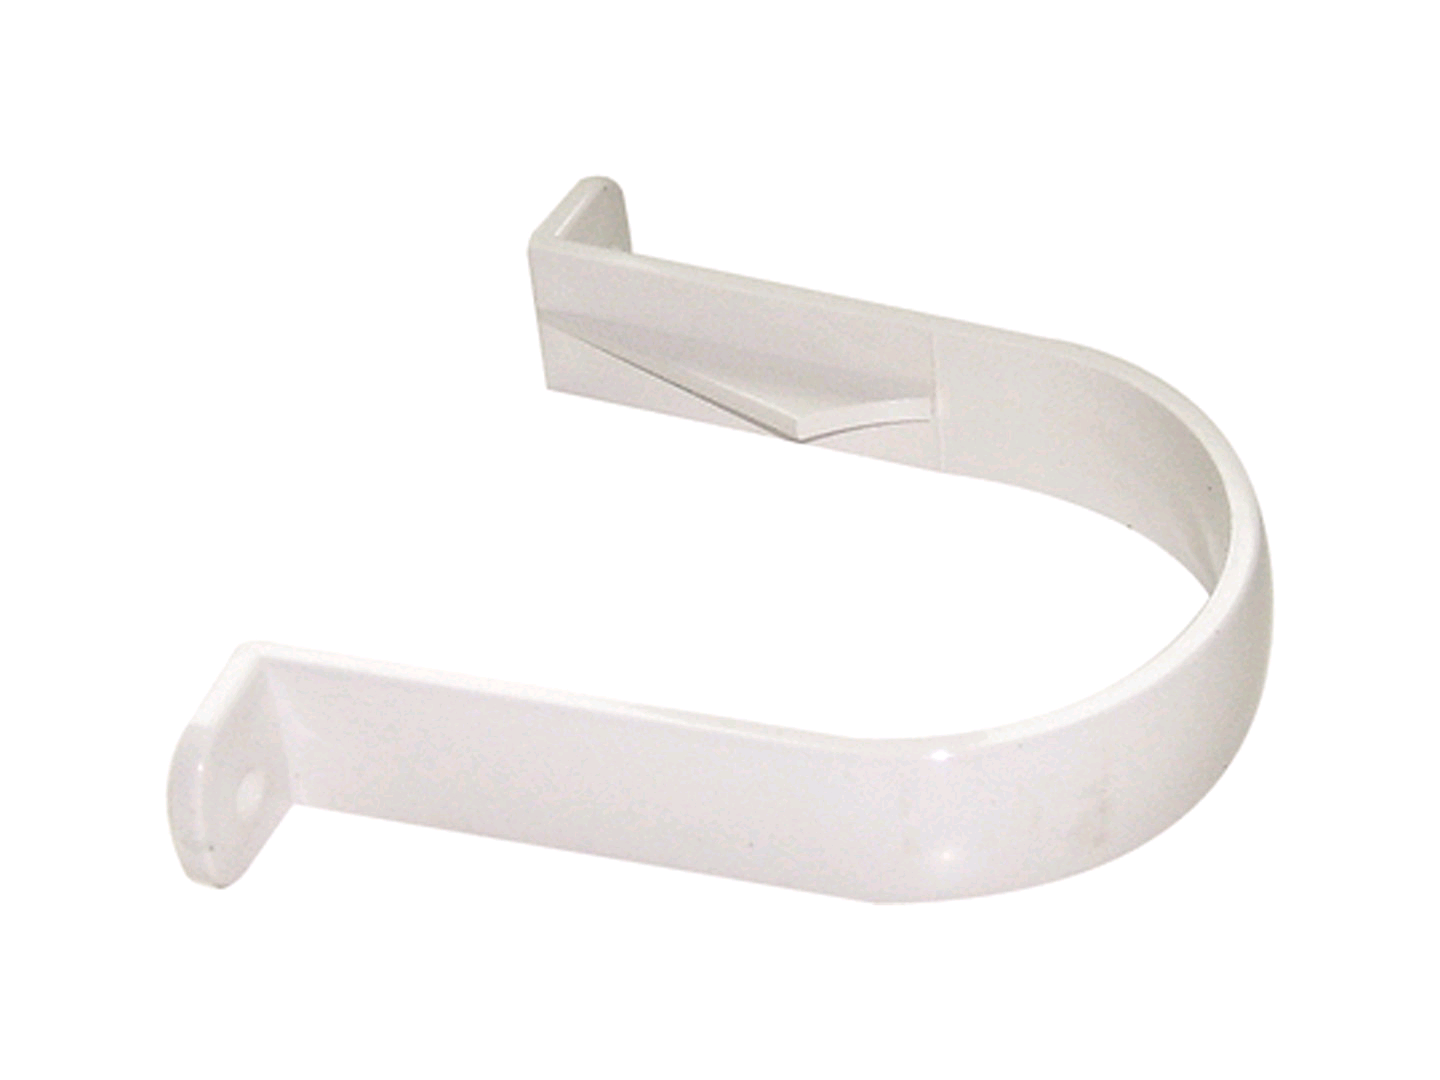 Floplast 68mm Downpipe Round Clips White